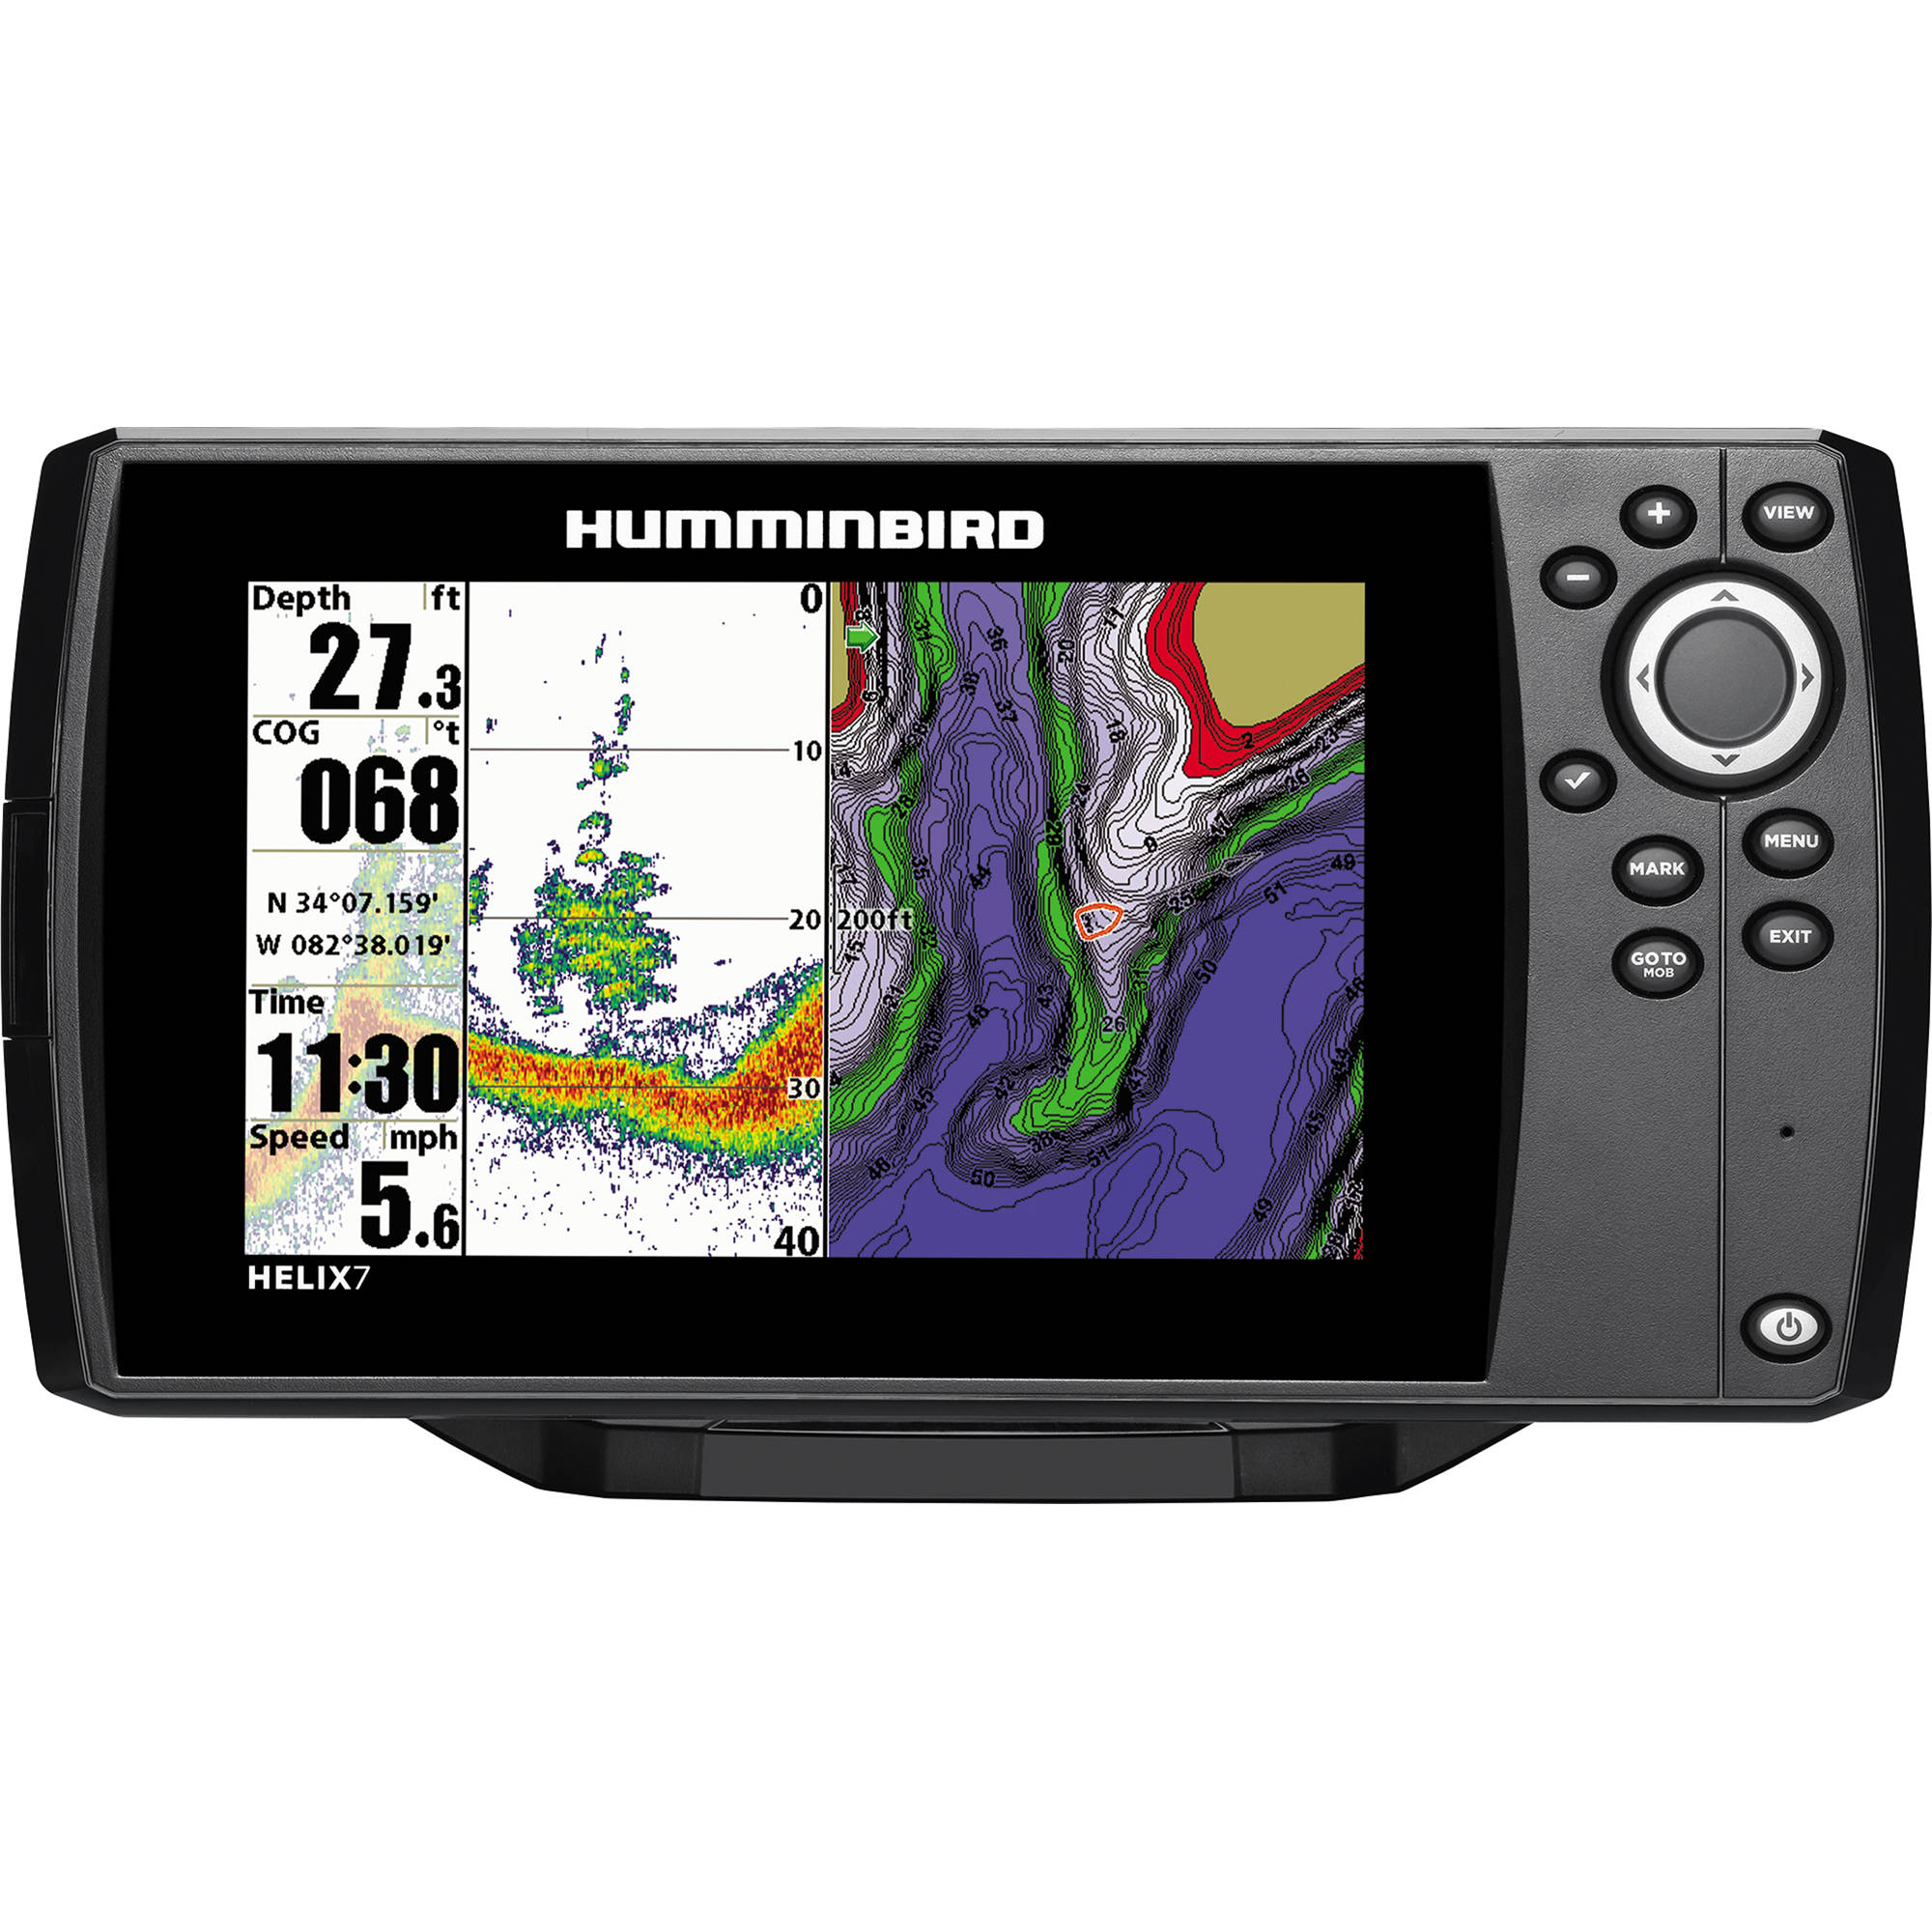 humminbird helix 7 gps fishfinder 409820-1 b&h photo video, Fish Finder